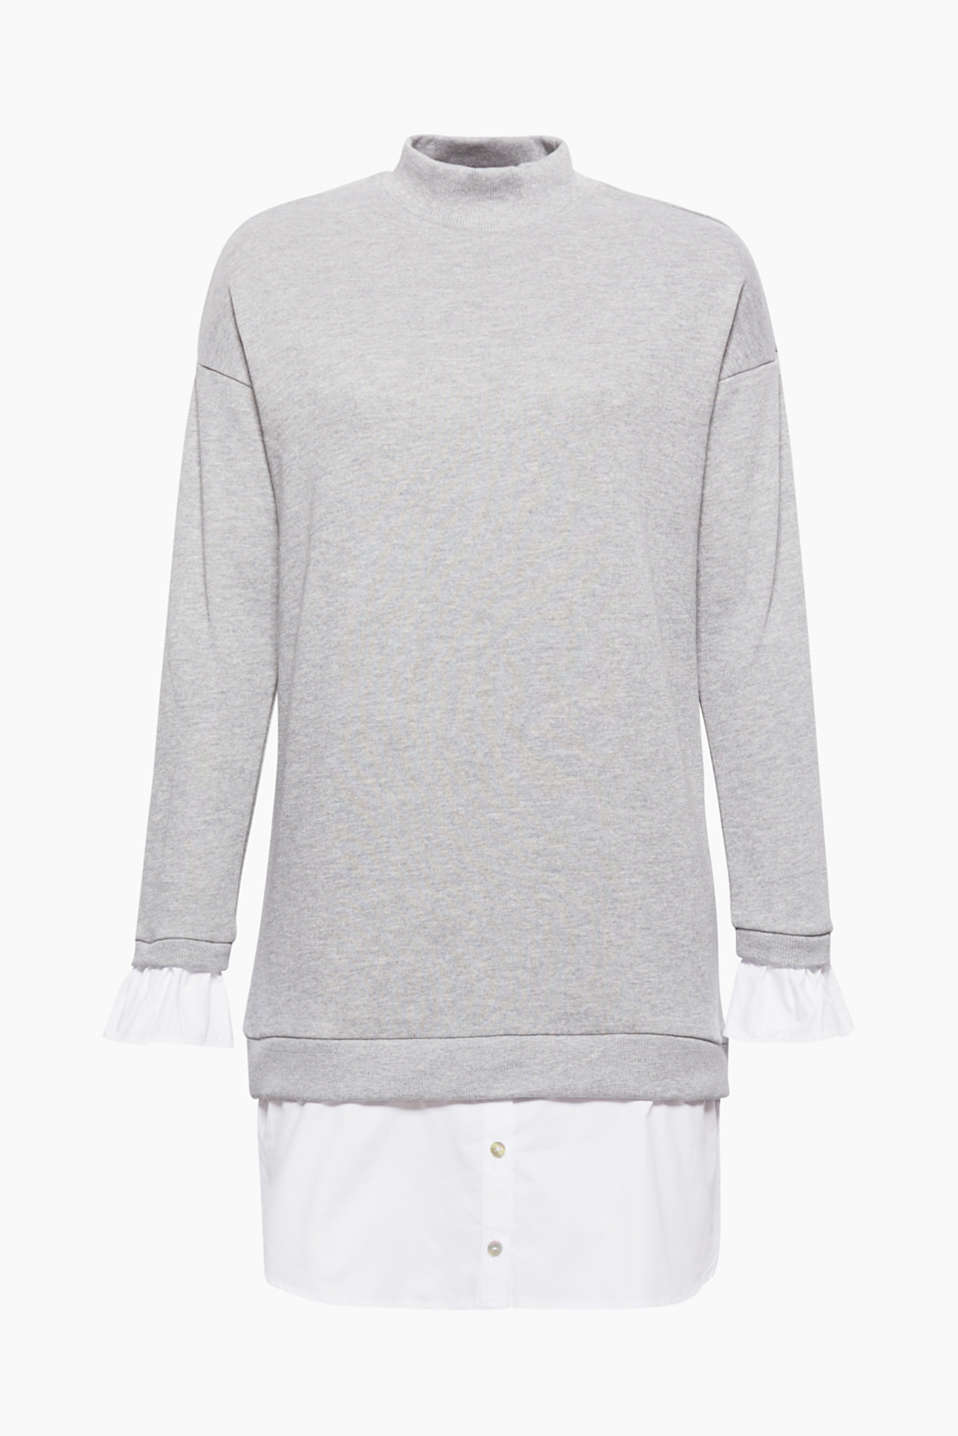 We love layering! The trims on the hem and sleeve ends make this oversized sweatshirt into a cool dress.